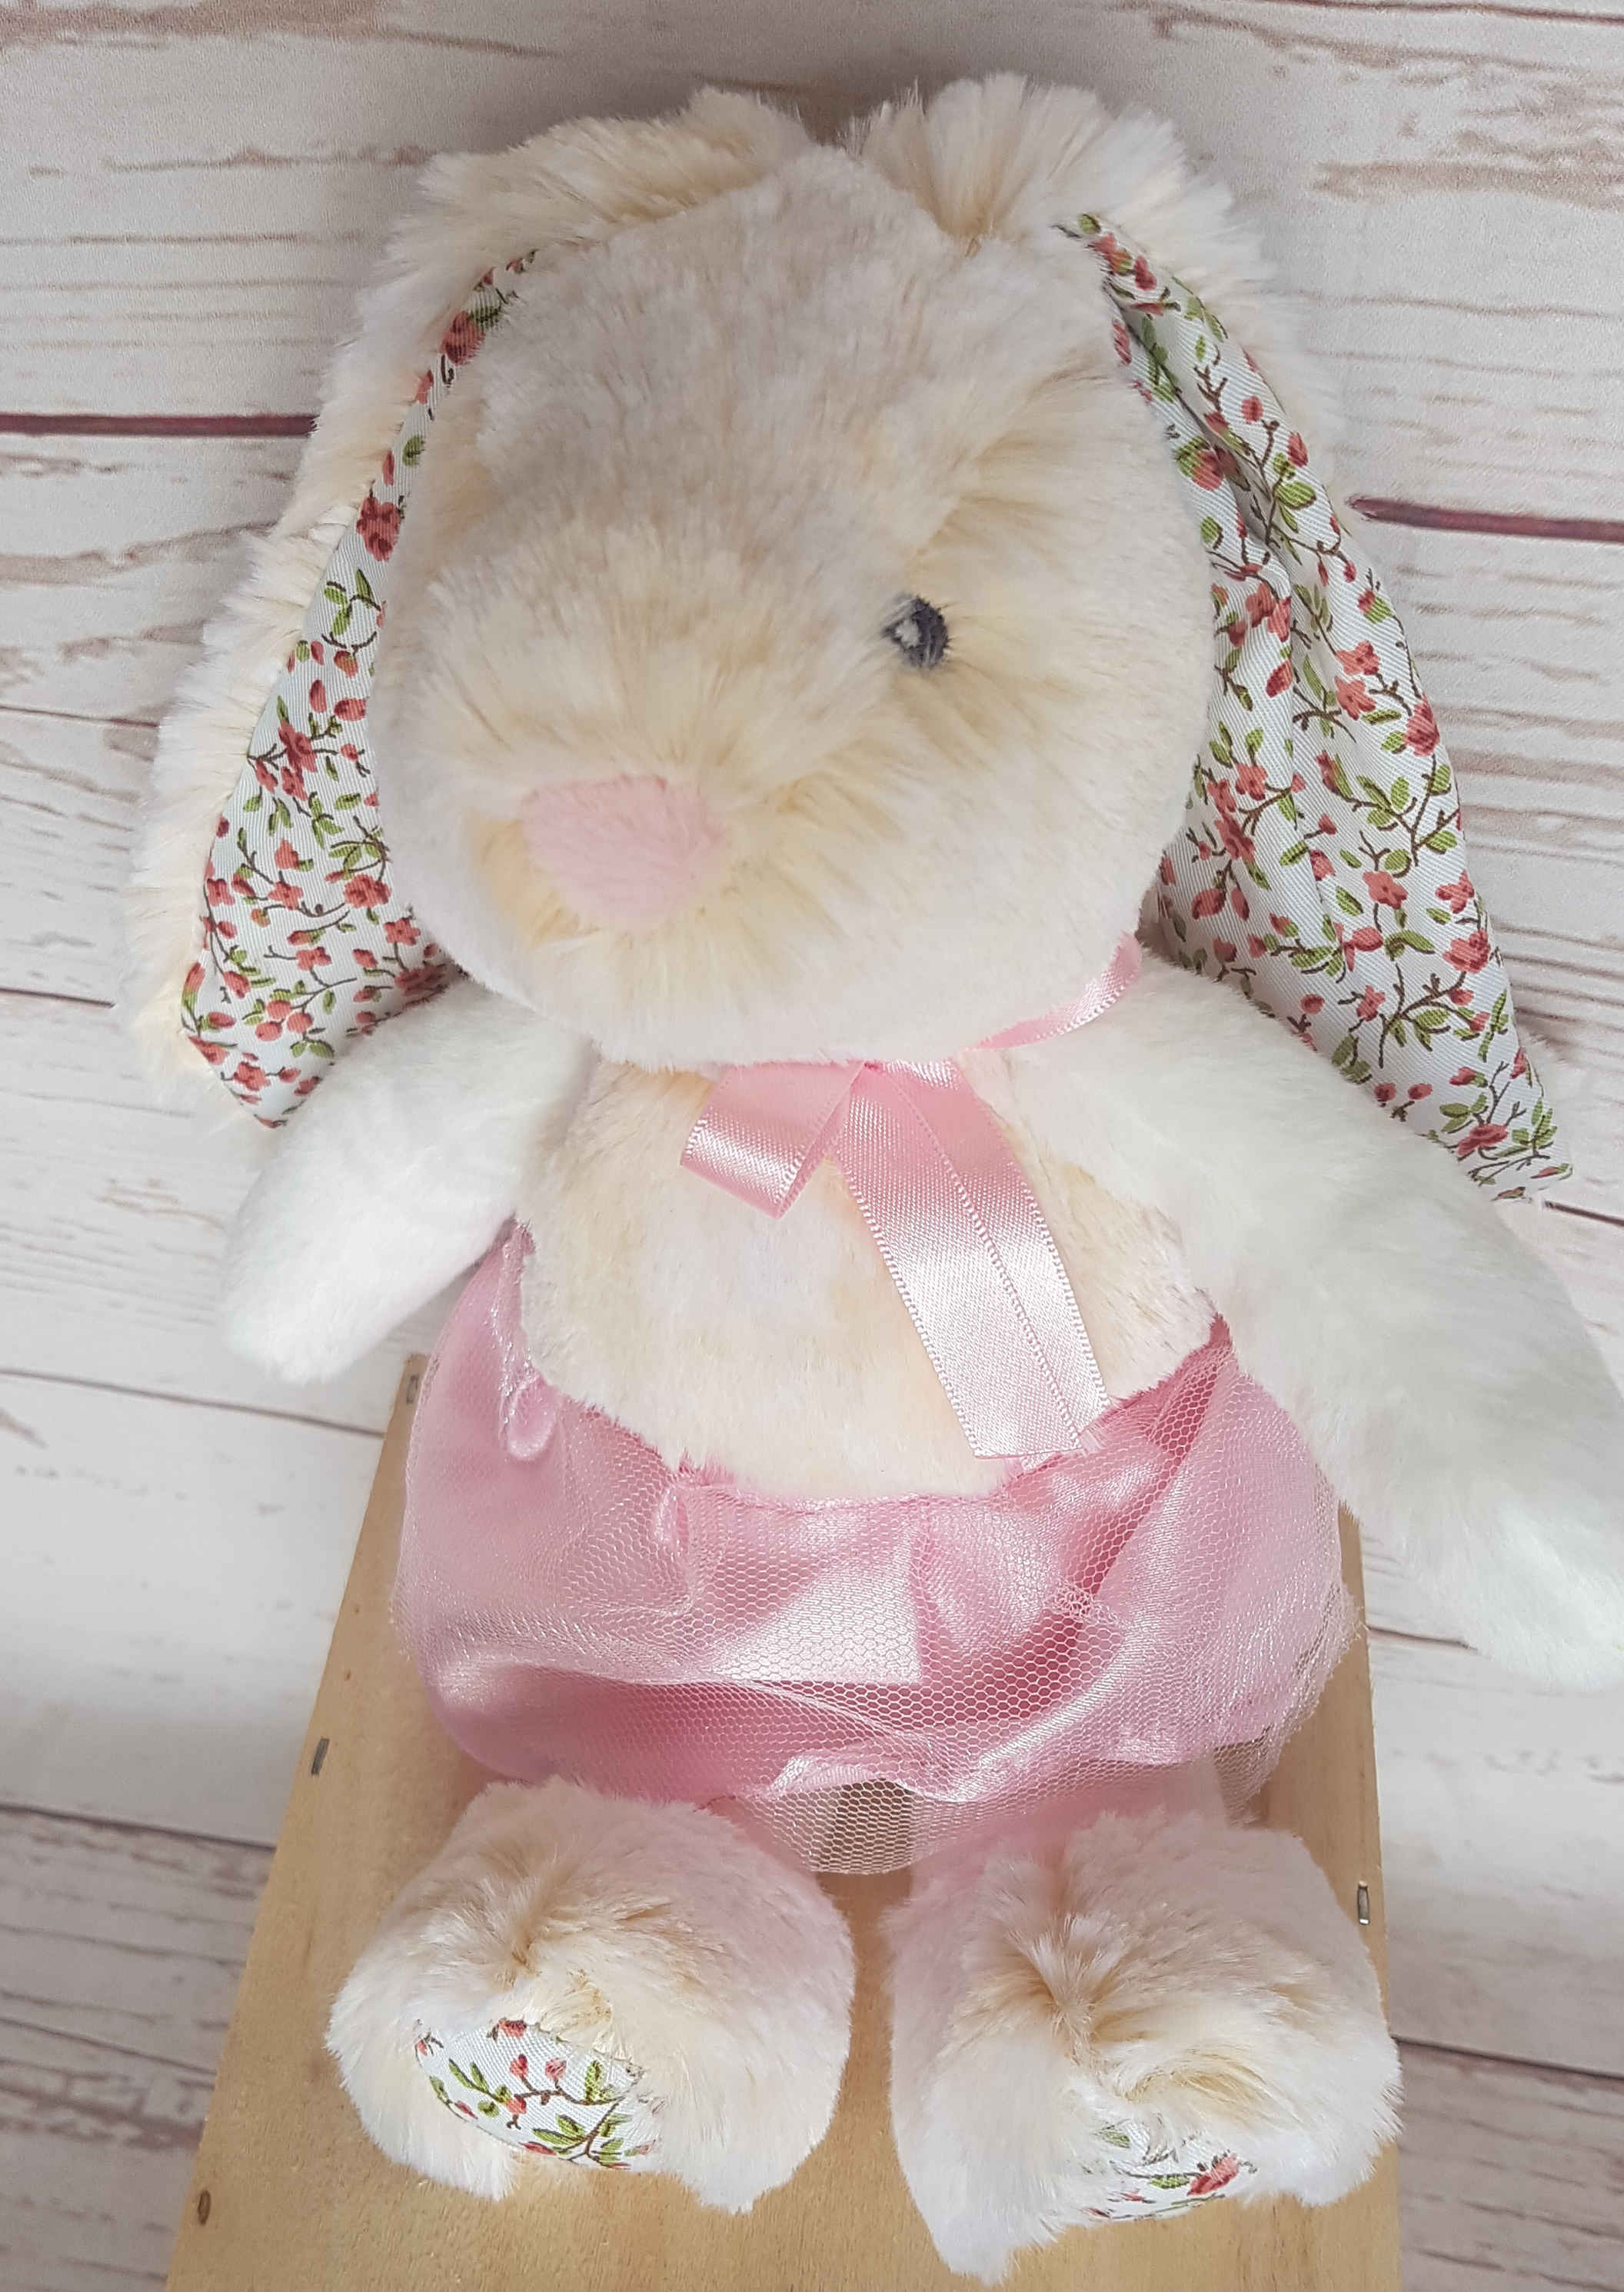 This beautifully stitched bunny is a treasure for any little girl.